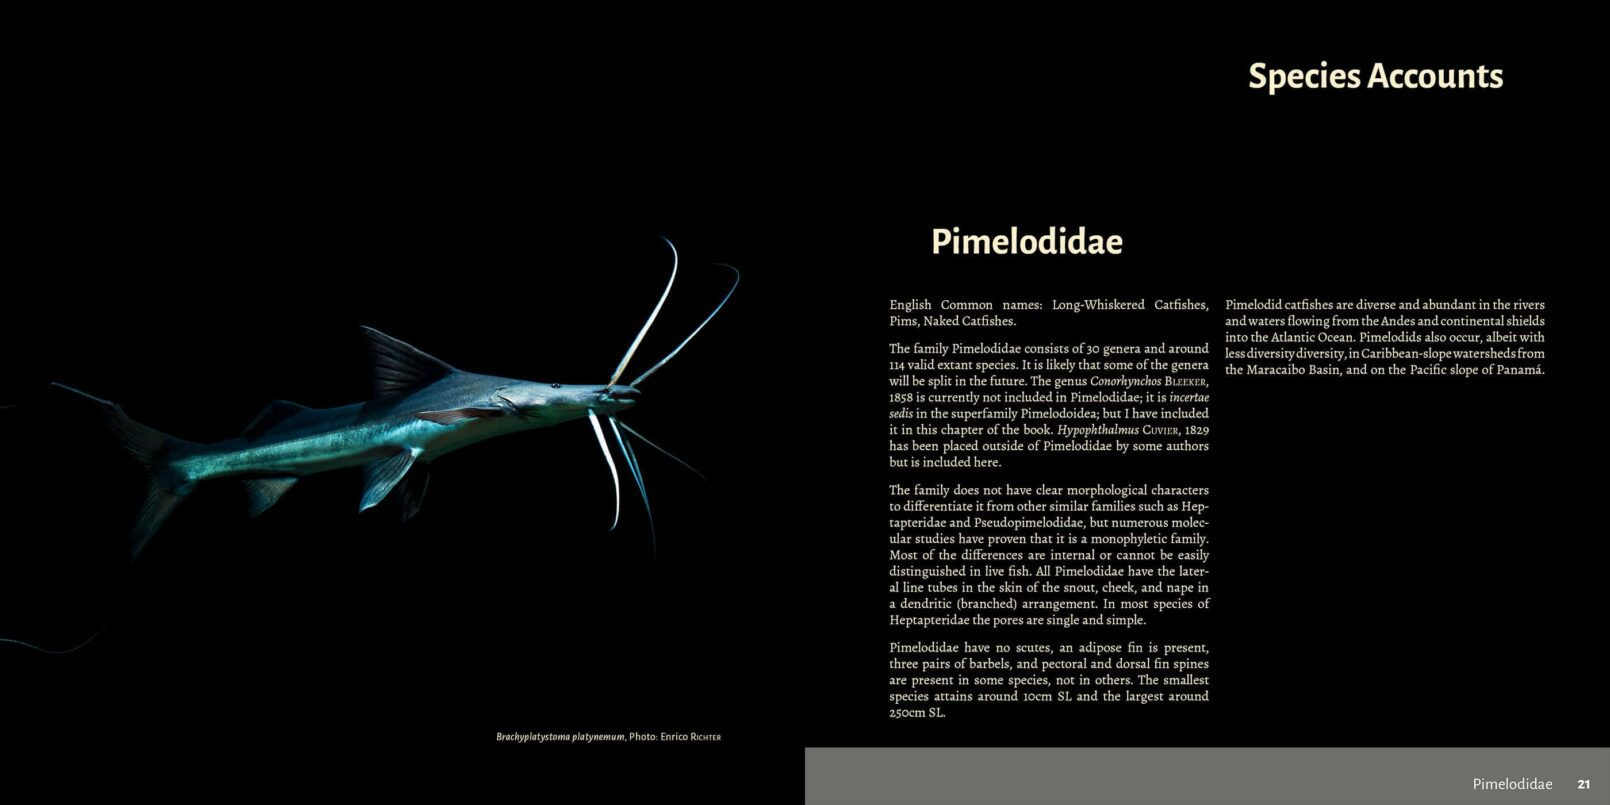 Pims - Pimelodidae,  Heptapteridae and  Pseudopimelodidae Catfishes / Steven Grant pages 20, 21